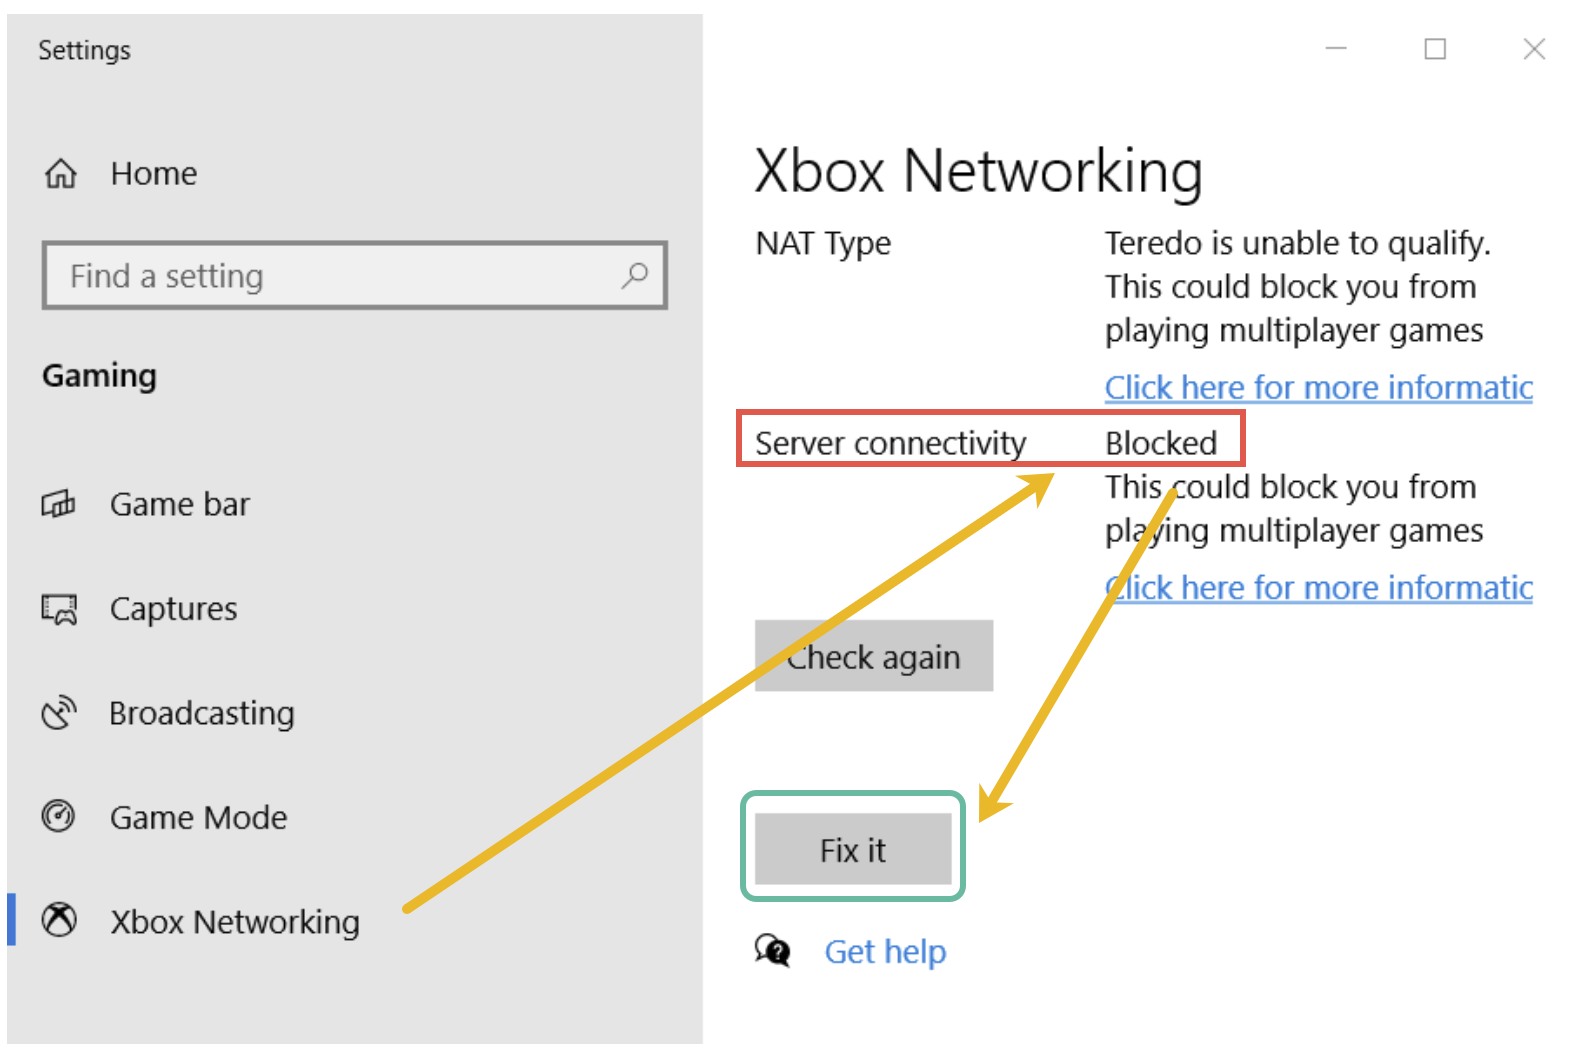 If the Server connectivity status shows as Blocked, then click on the Fix it button.